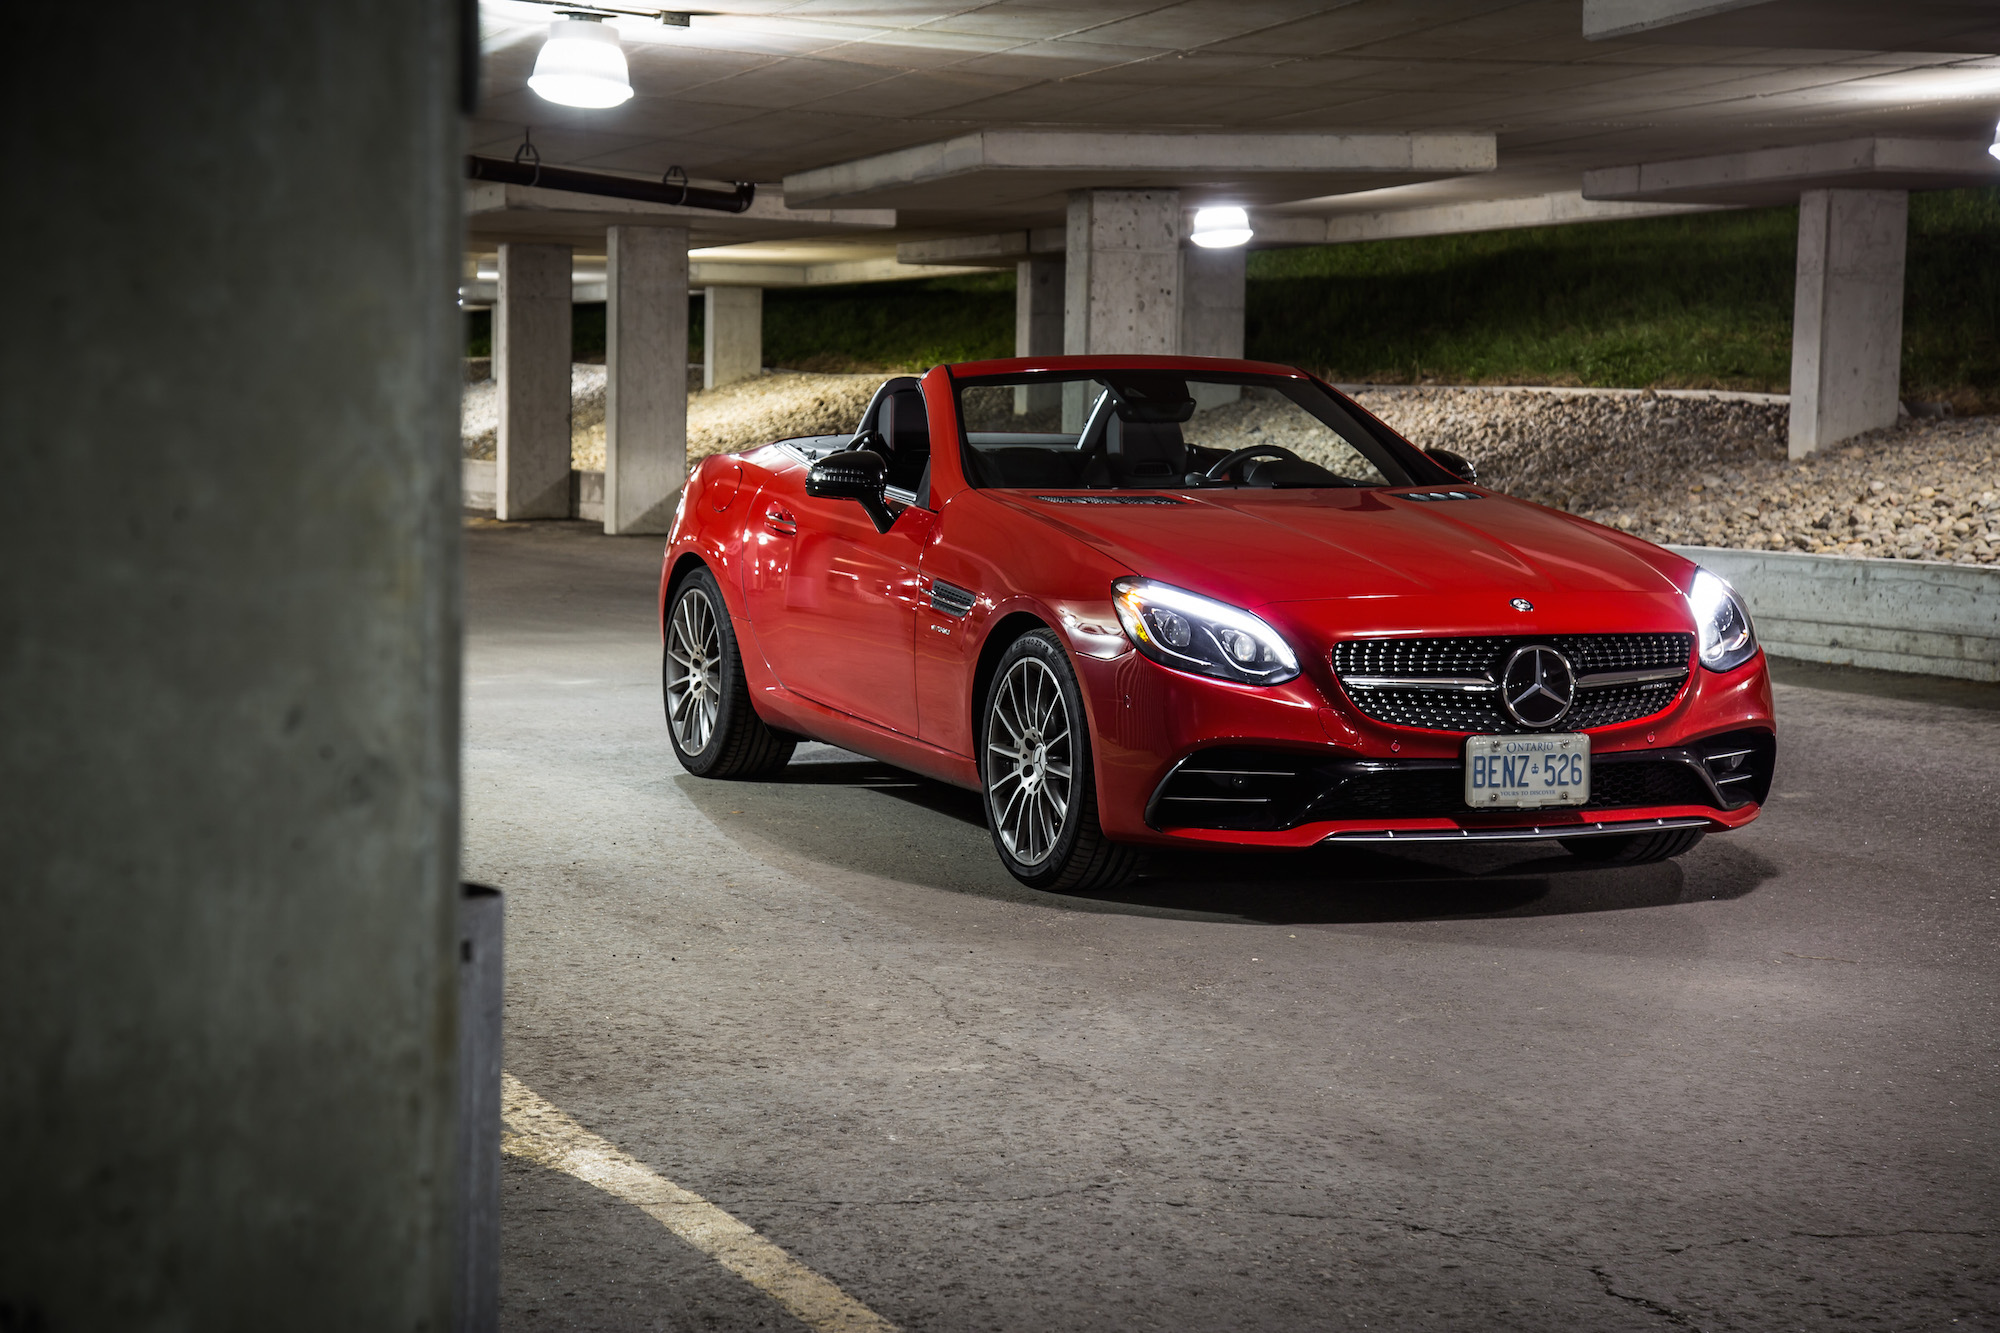 http://www.canadianautoreview.ca/images/car_photos/2017-mercedes-amg-slc-43/normal/mercedes-amg-slc-43-fs1.jpg